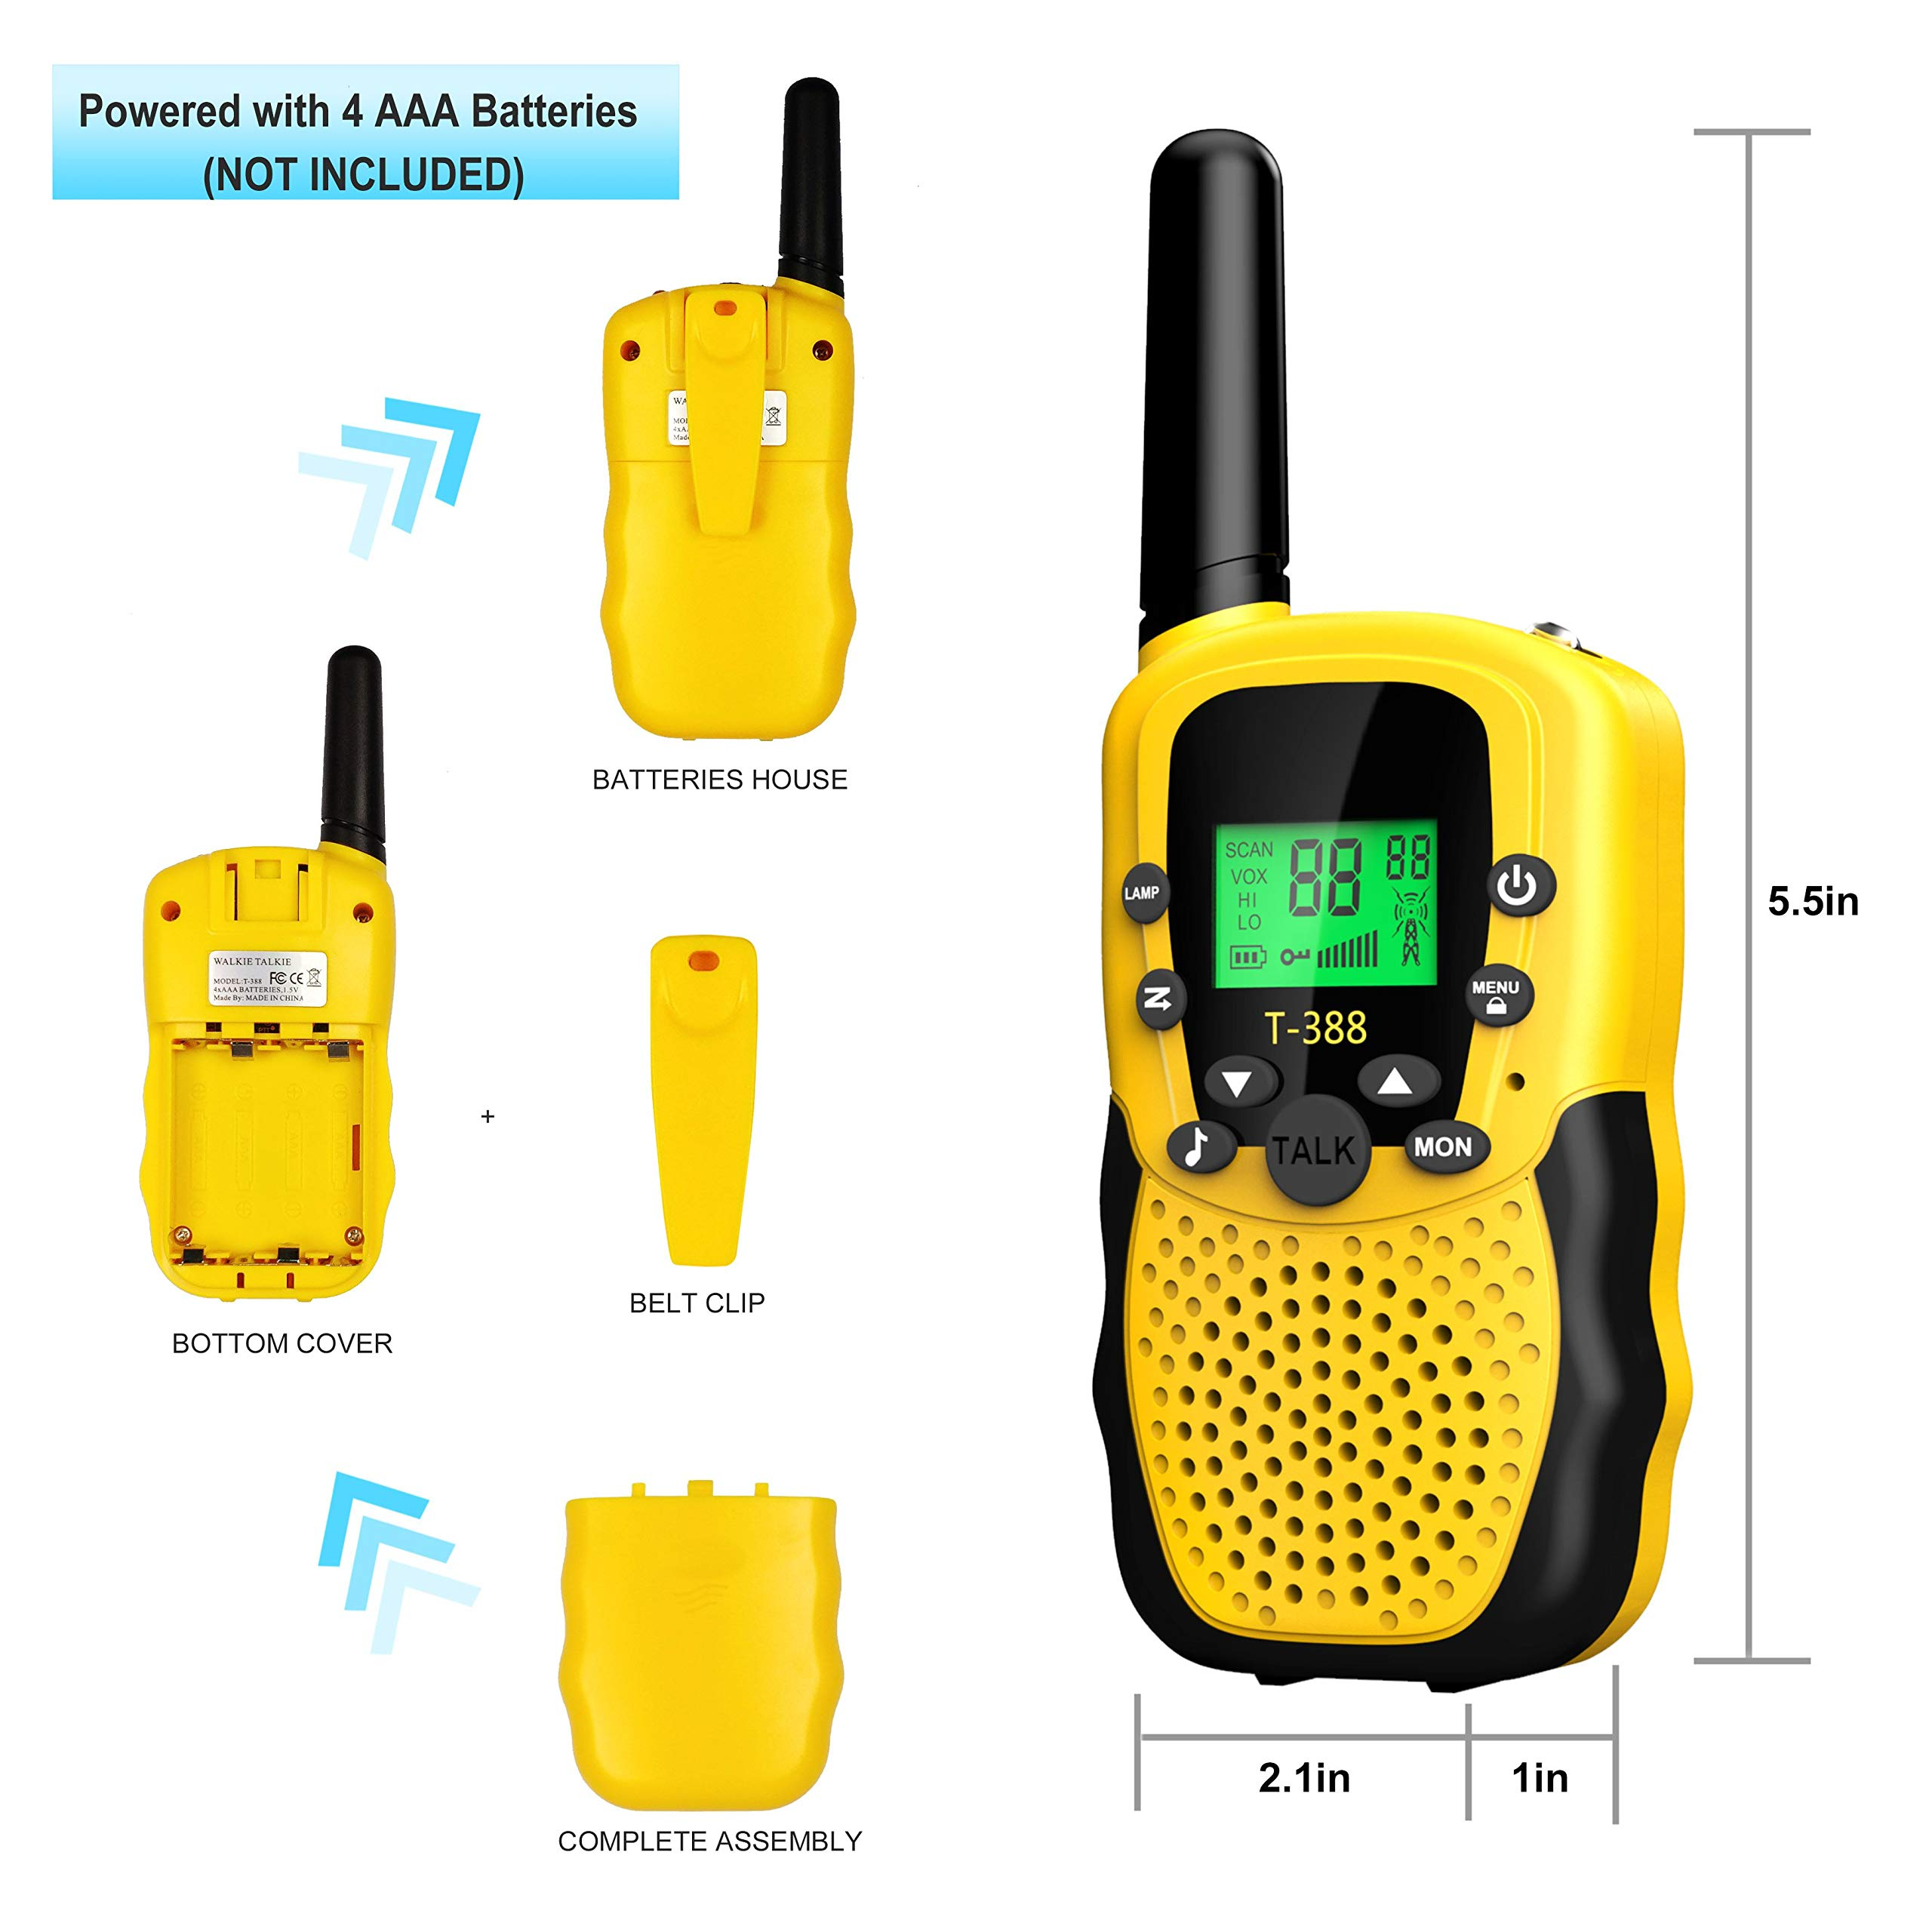 Walkies Talkies for Kids, 22 Channels FRS/GMRS UHF Two Way Radios 4 Miles Handheld Mini Kids Walkie Talkies for Kids Best Gifts Kids Toys Built in Flashlight by JimBest1970 (Image #3)